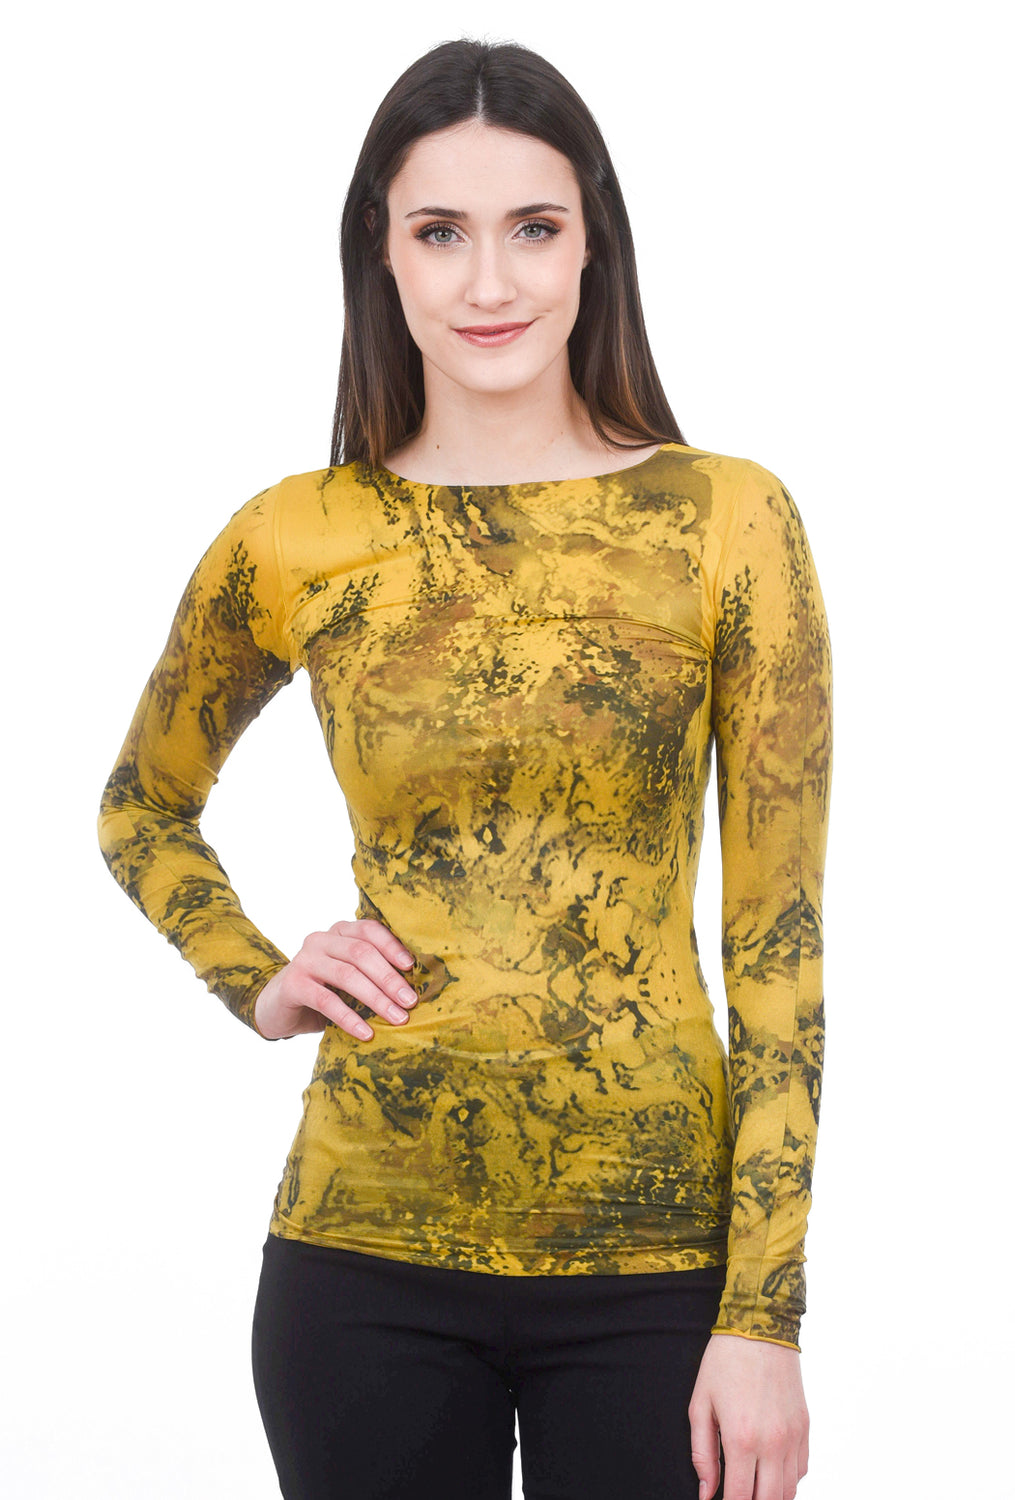 AMB Designs Silver Waves Raw Edge Top, Mustard One Size Mustard